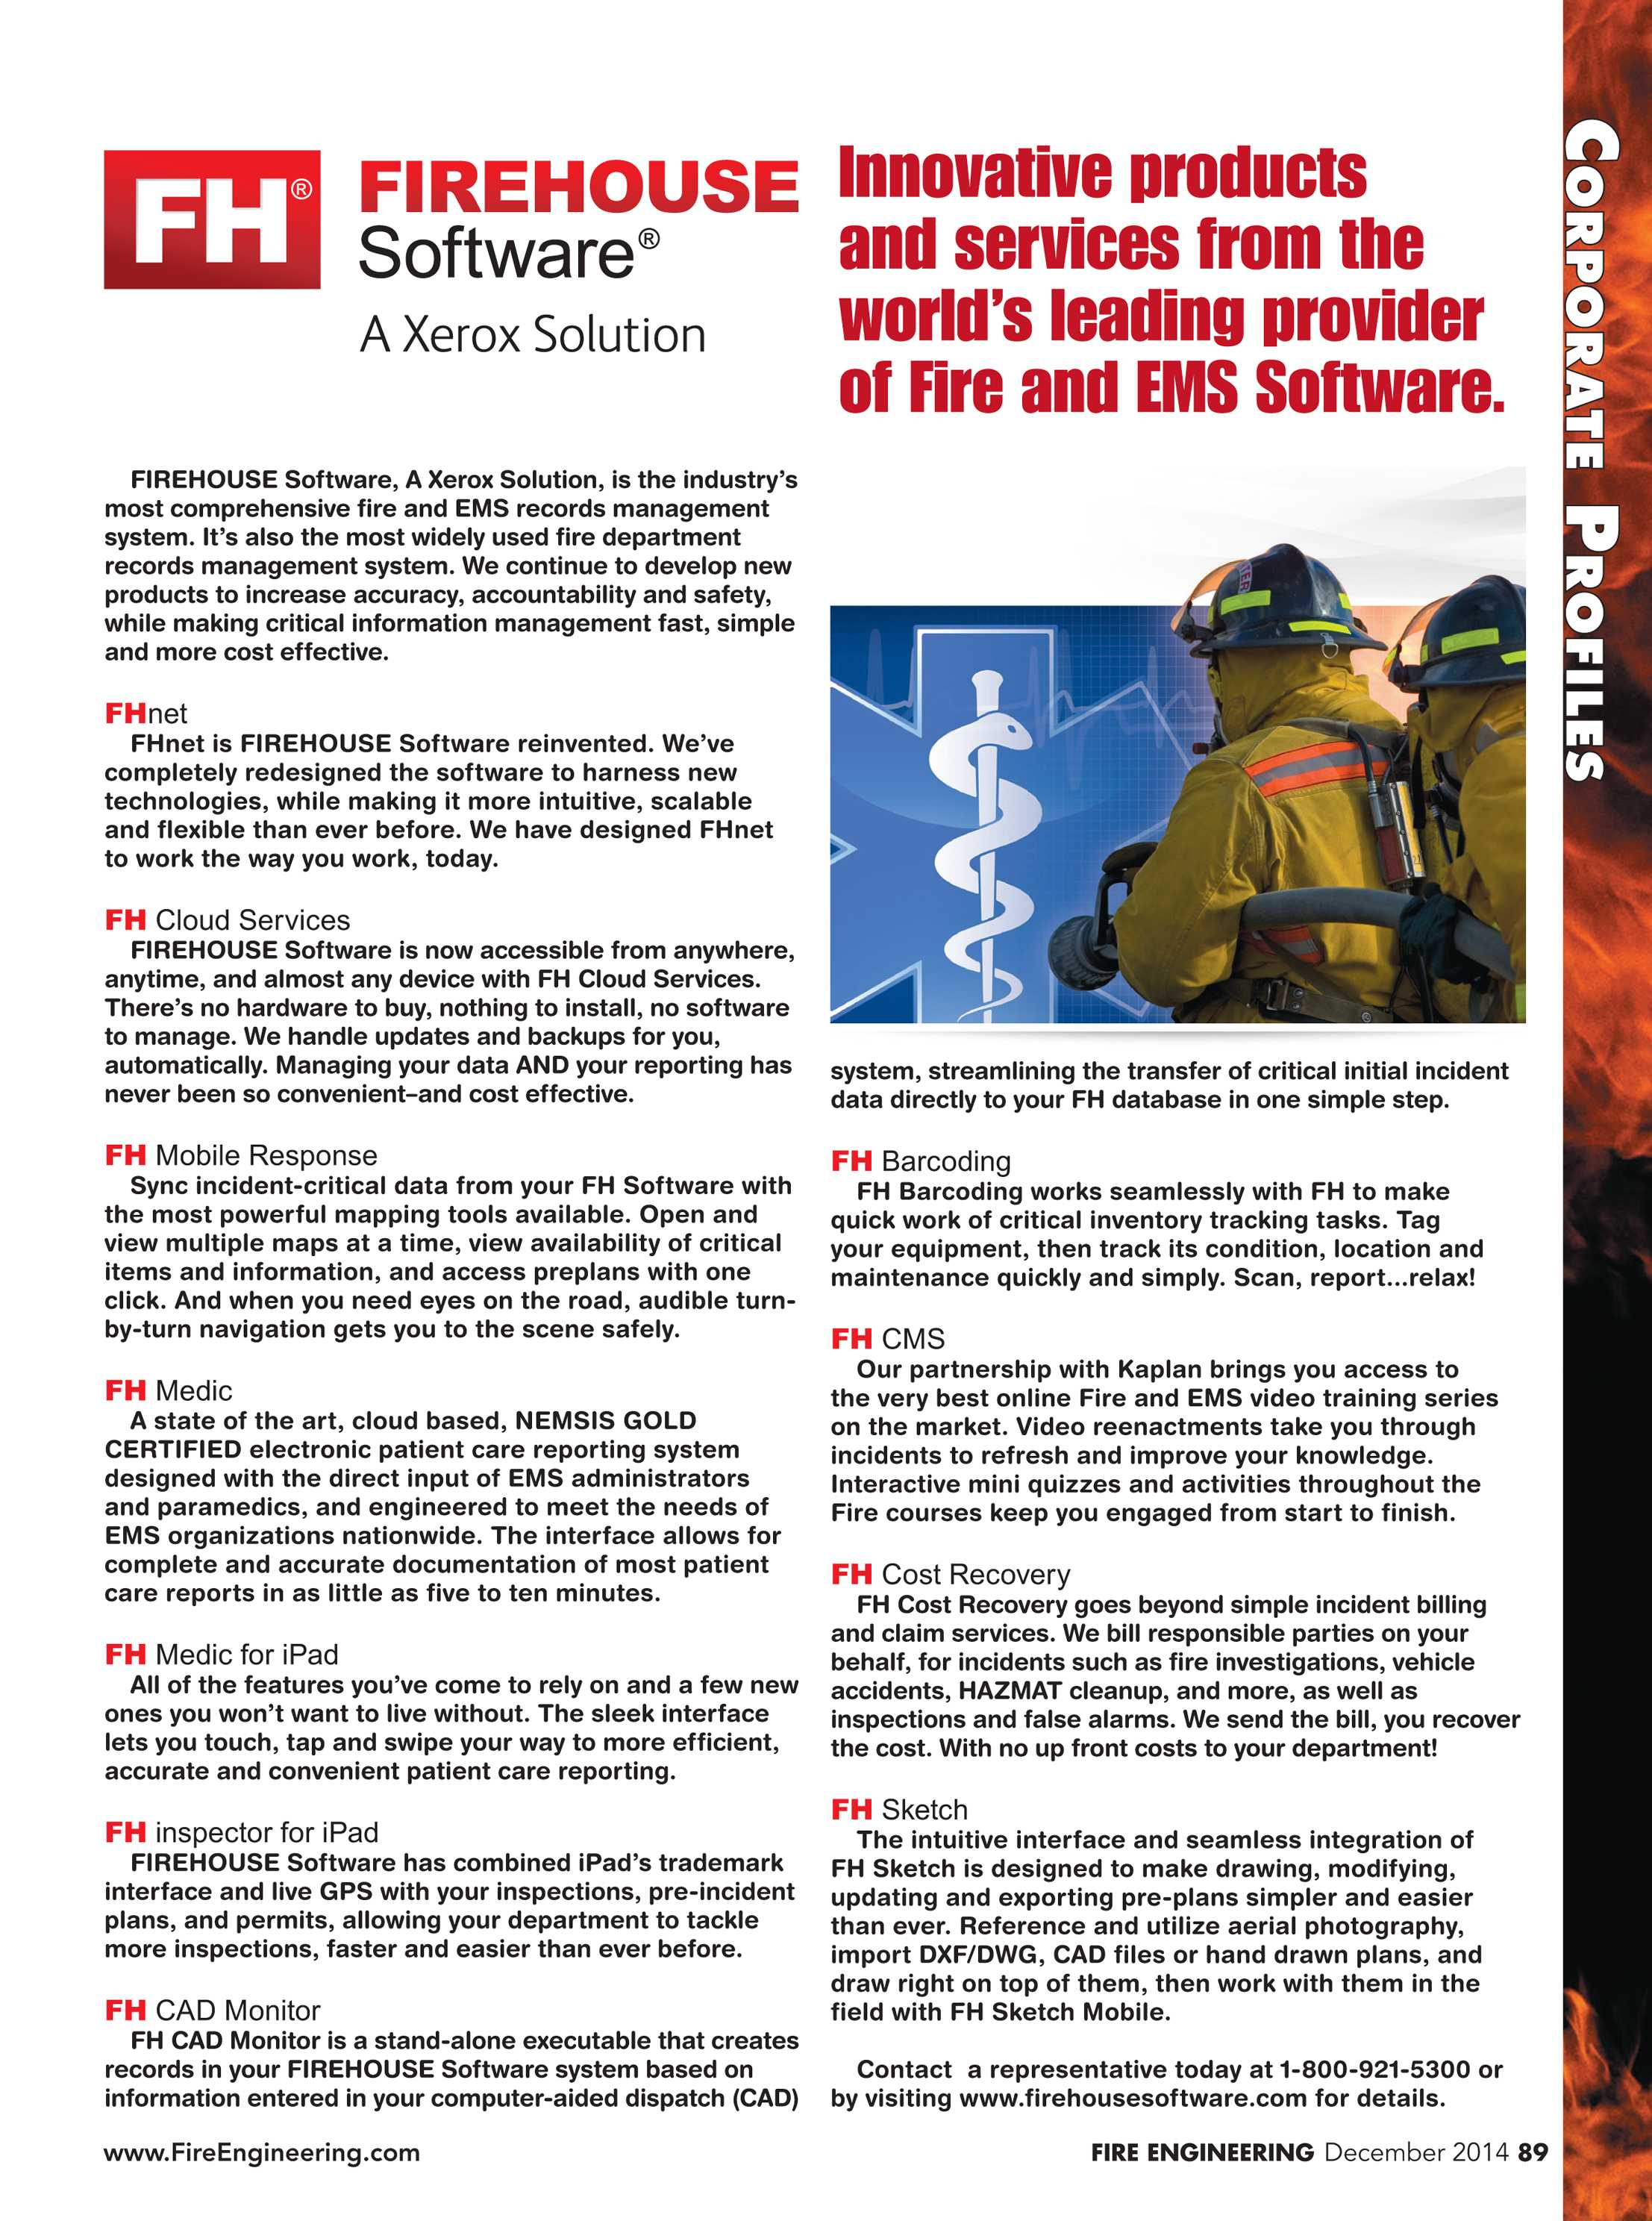 Fire Engineering - December 2014 - page 89